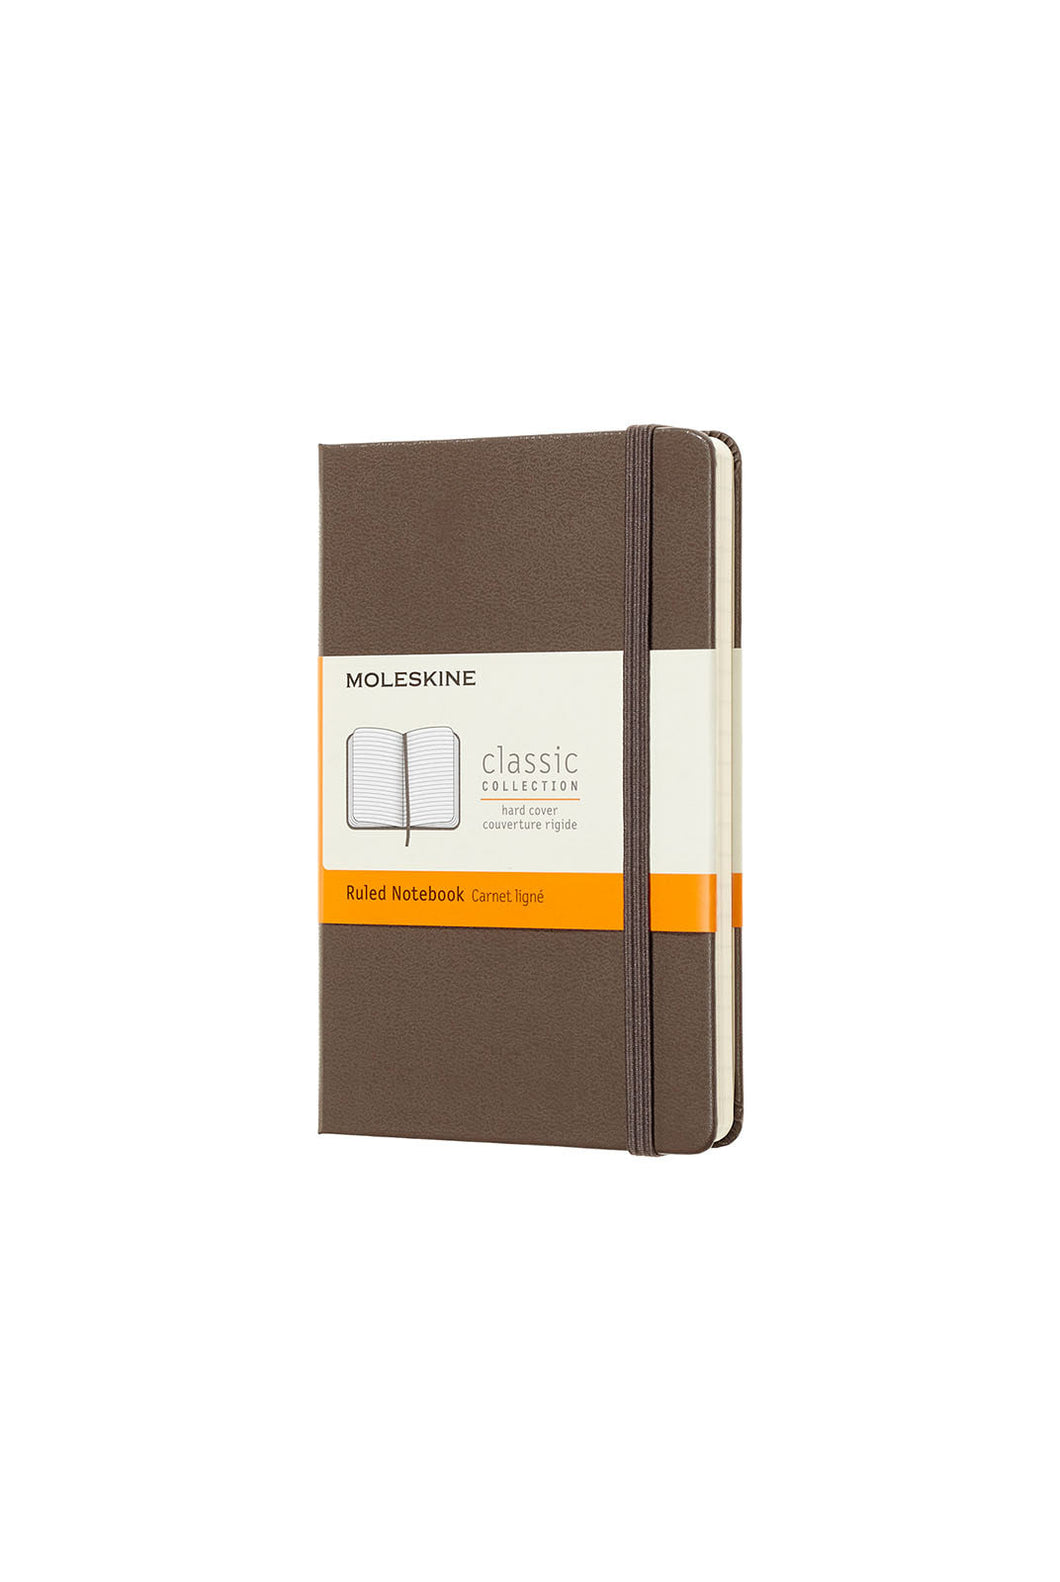 Moleskine - Classic Hard Cover Notebook - Ruled - Pocket (9x14cm) - Earth Brown